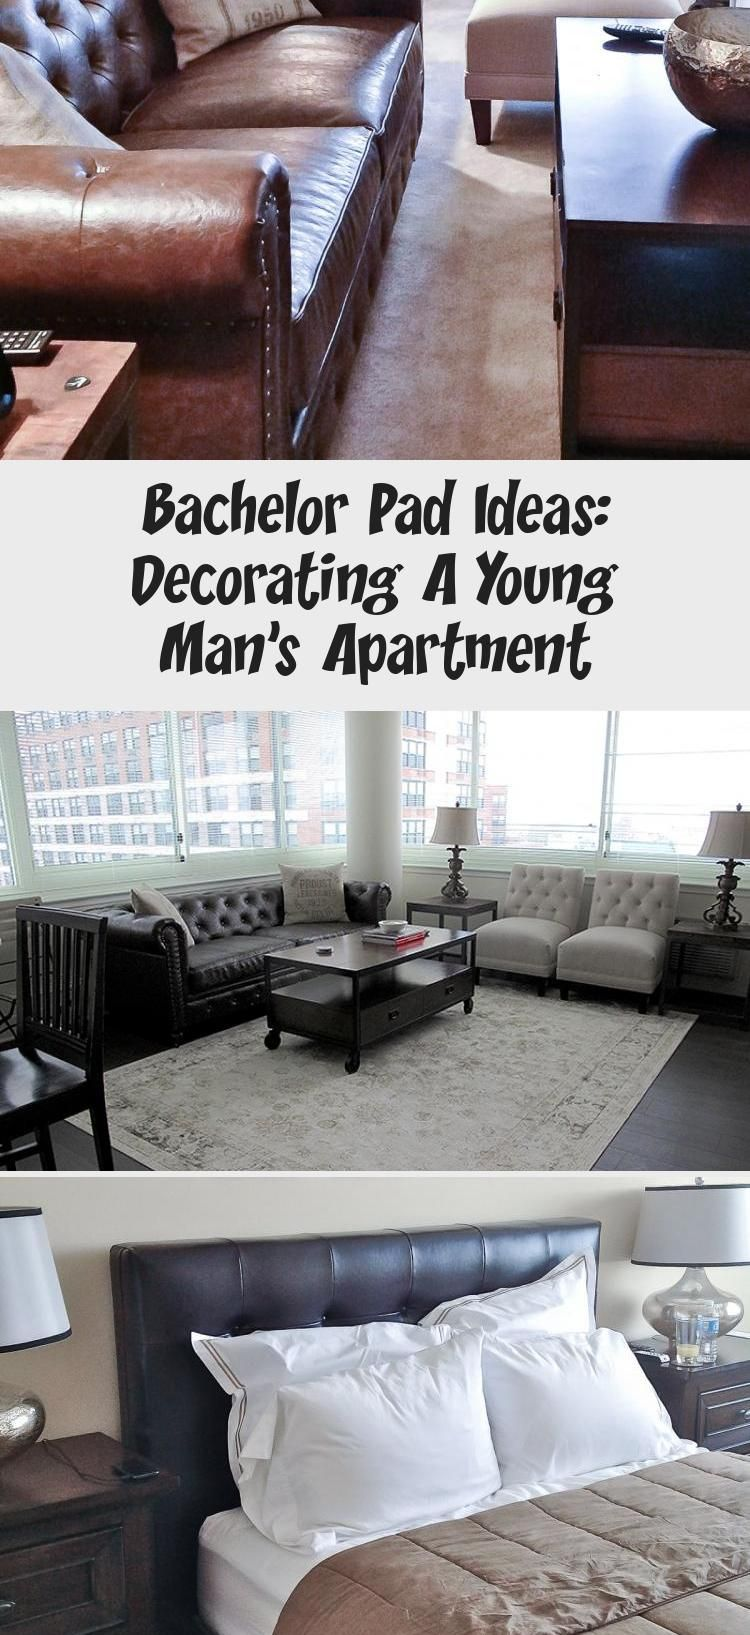 Bachelor Pad Decor Looking For Bachelor Pad Ideas For Decorating